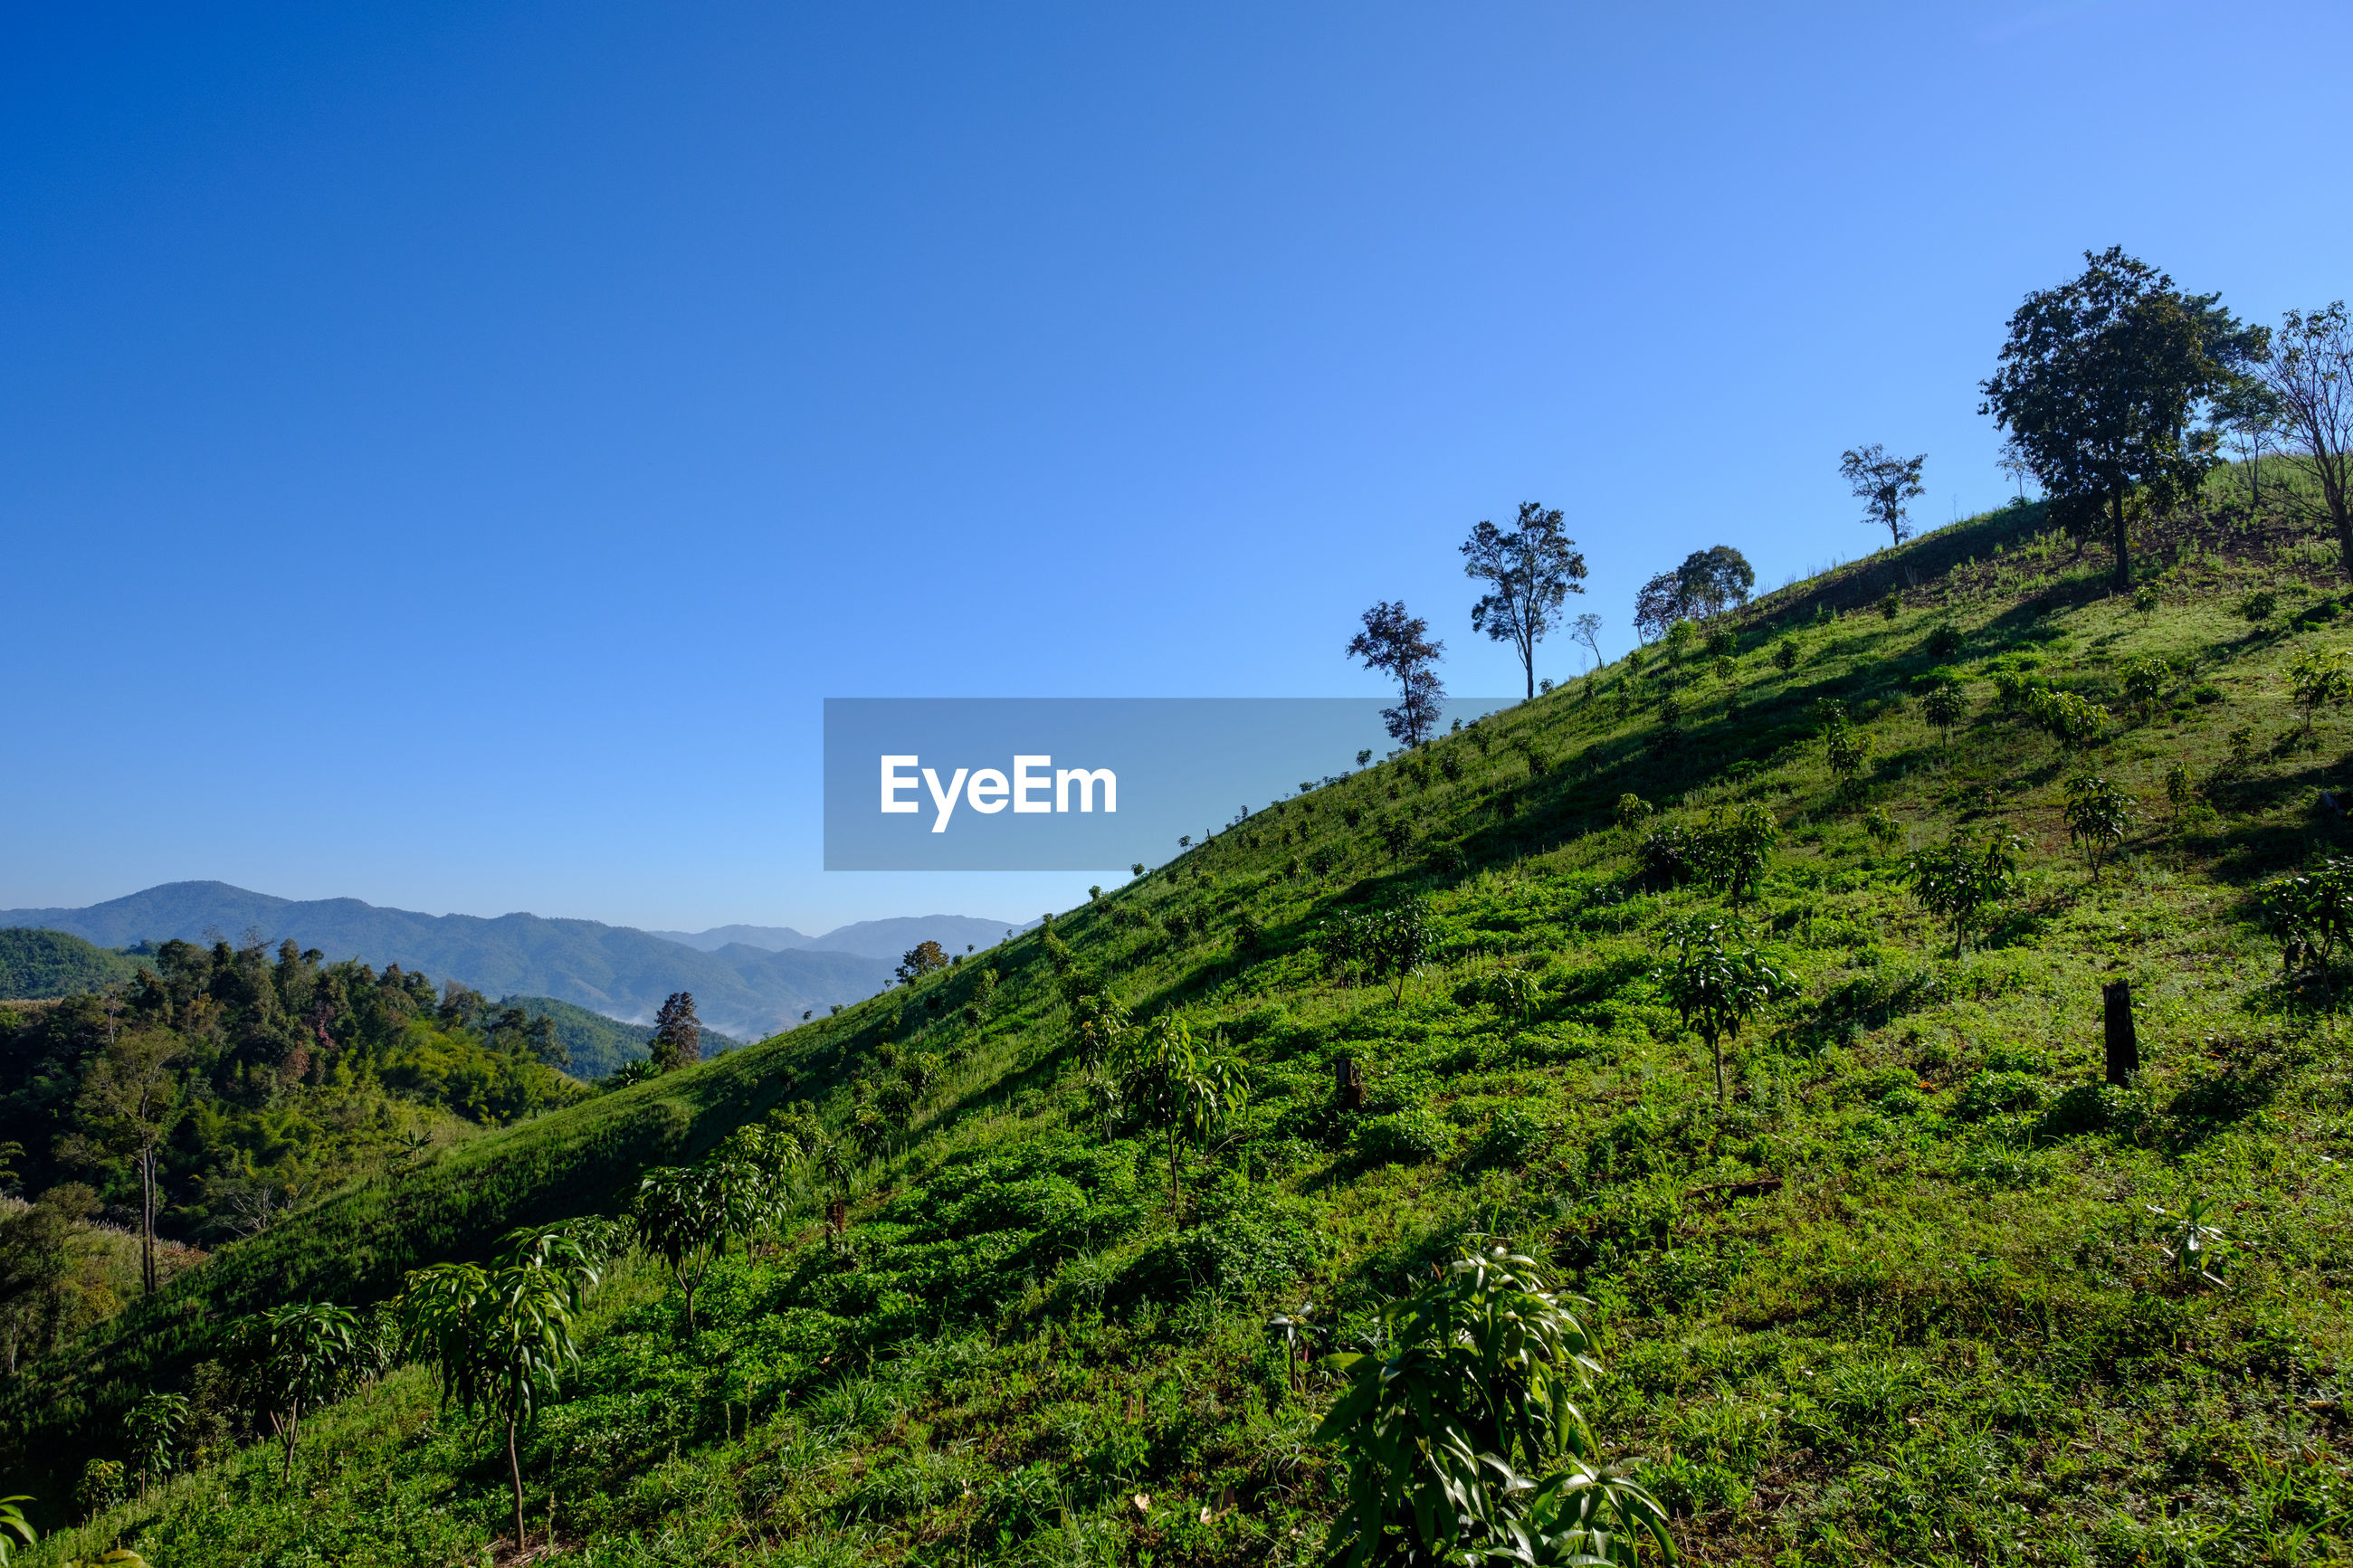 SCENIC VIEW OF GREEN LANDSCAPE AGAINST CLEAR BLUE SKY